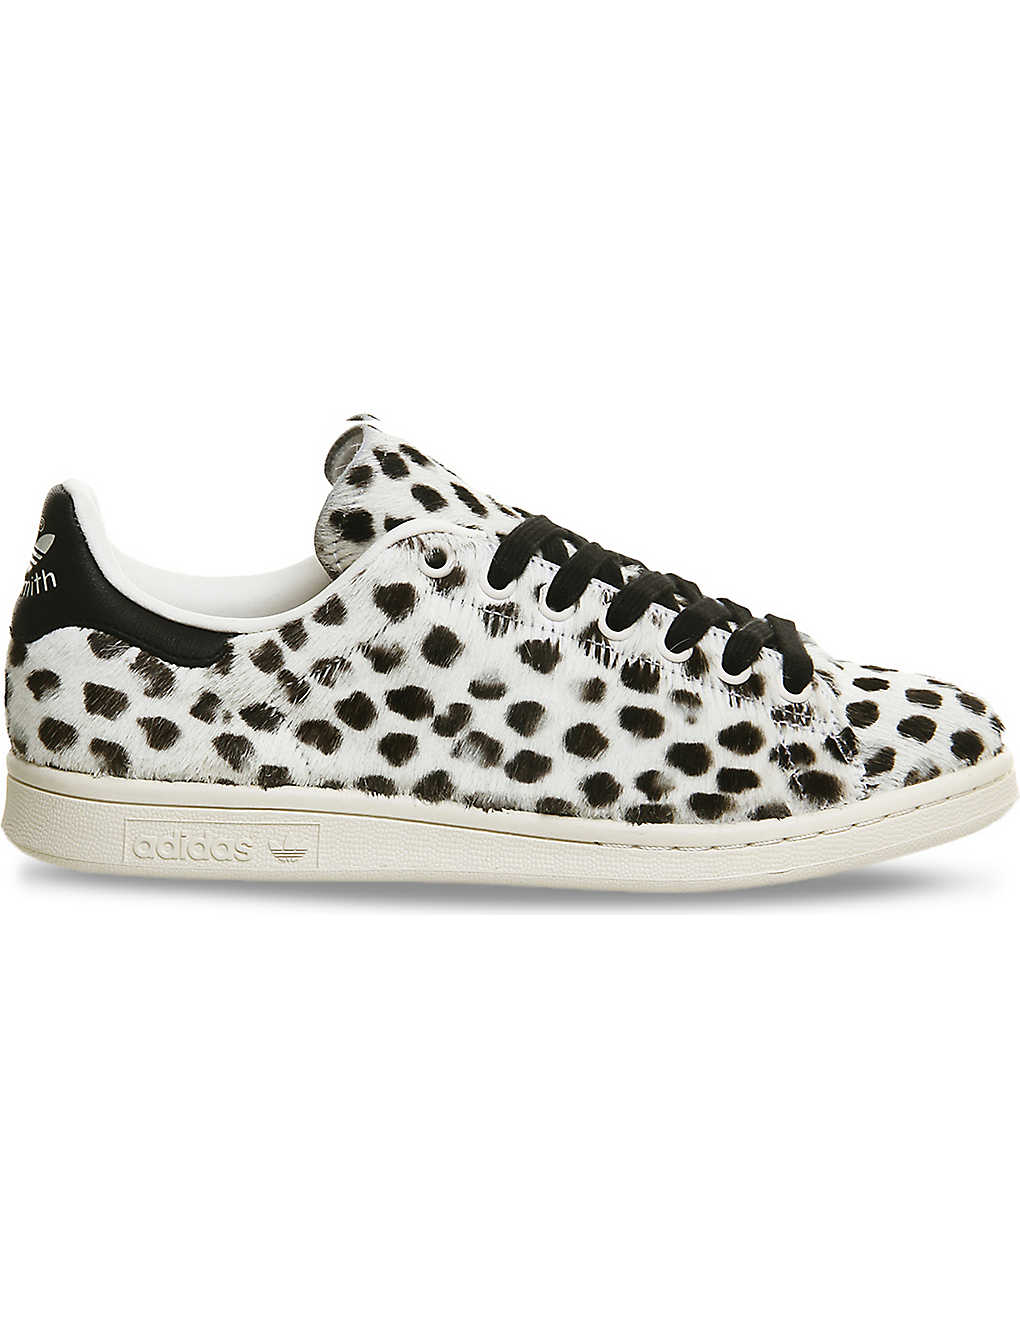 timeless design 11ff8 e2230 ... Stan Smith pony-hair leather trainers zoom ...